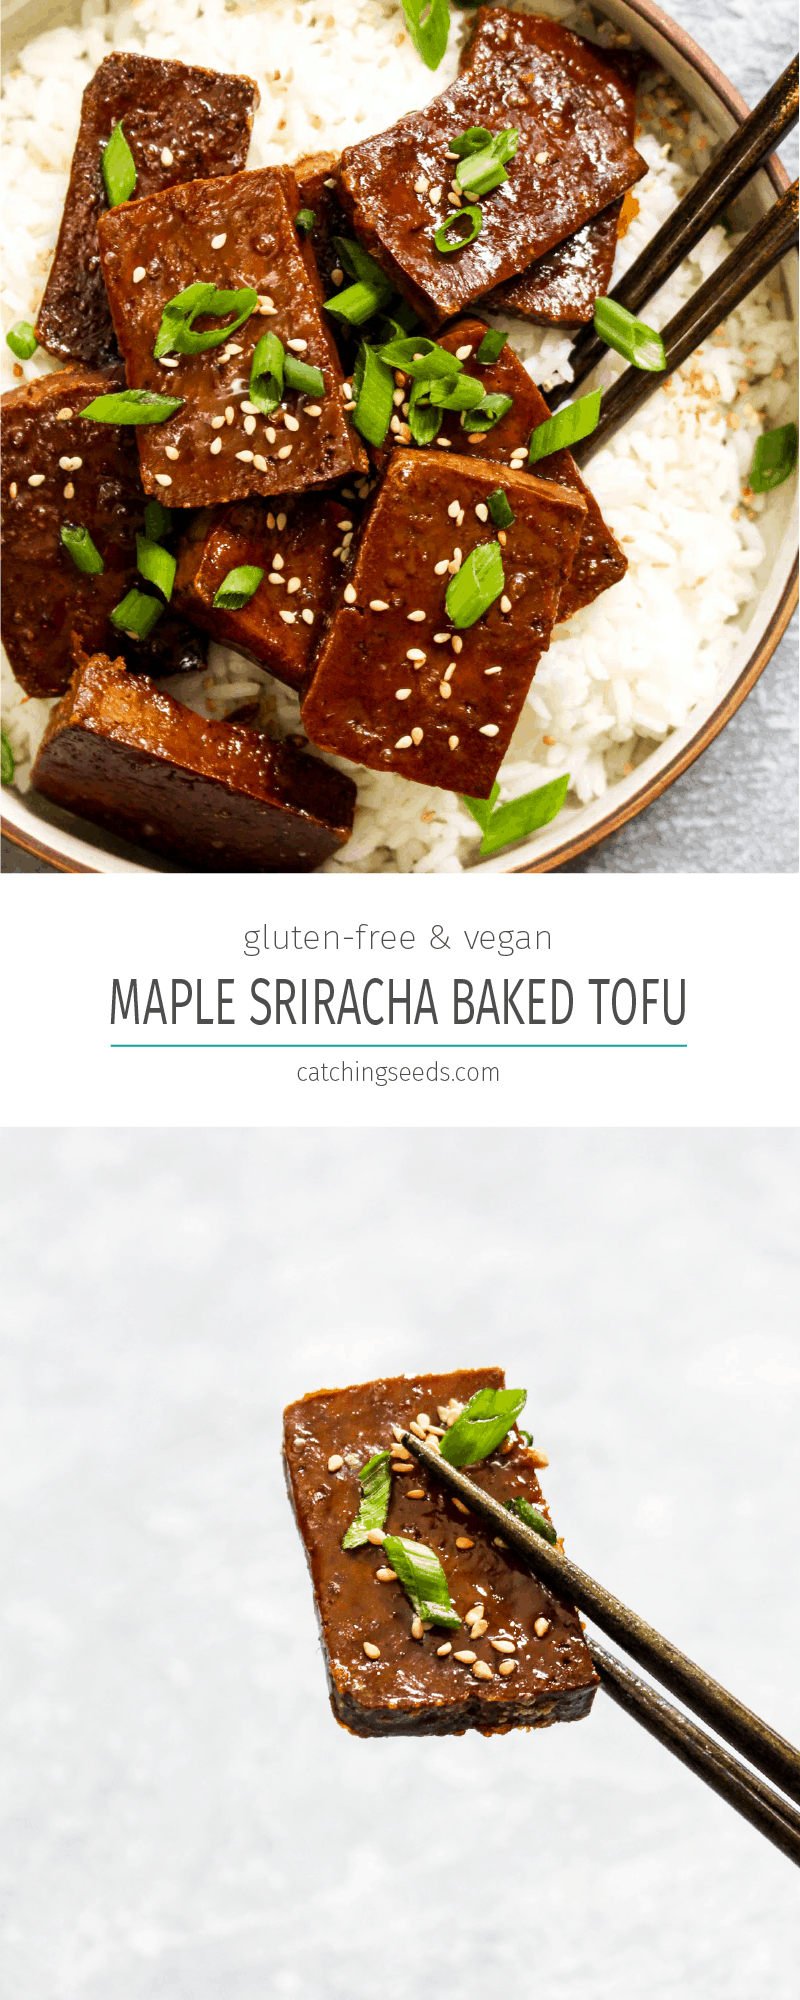 Four ingredient Maple Sriracha Baked Tofu is full of sweet, sticky, and spicy flavor. Marinading the tofu and basting it with a concentrated glaze while it bakes ensures this recipe is loaded with flavor! Vegan, gluten free, grain free, soy free and healthy! | CatchingSeeds.com